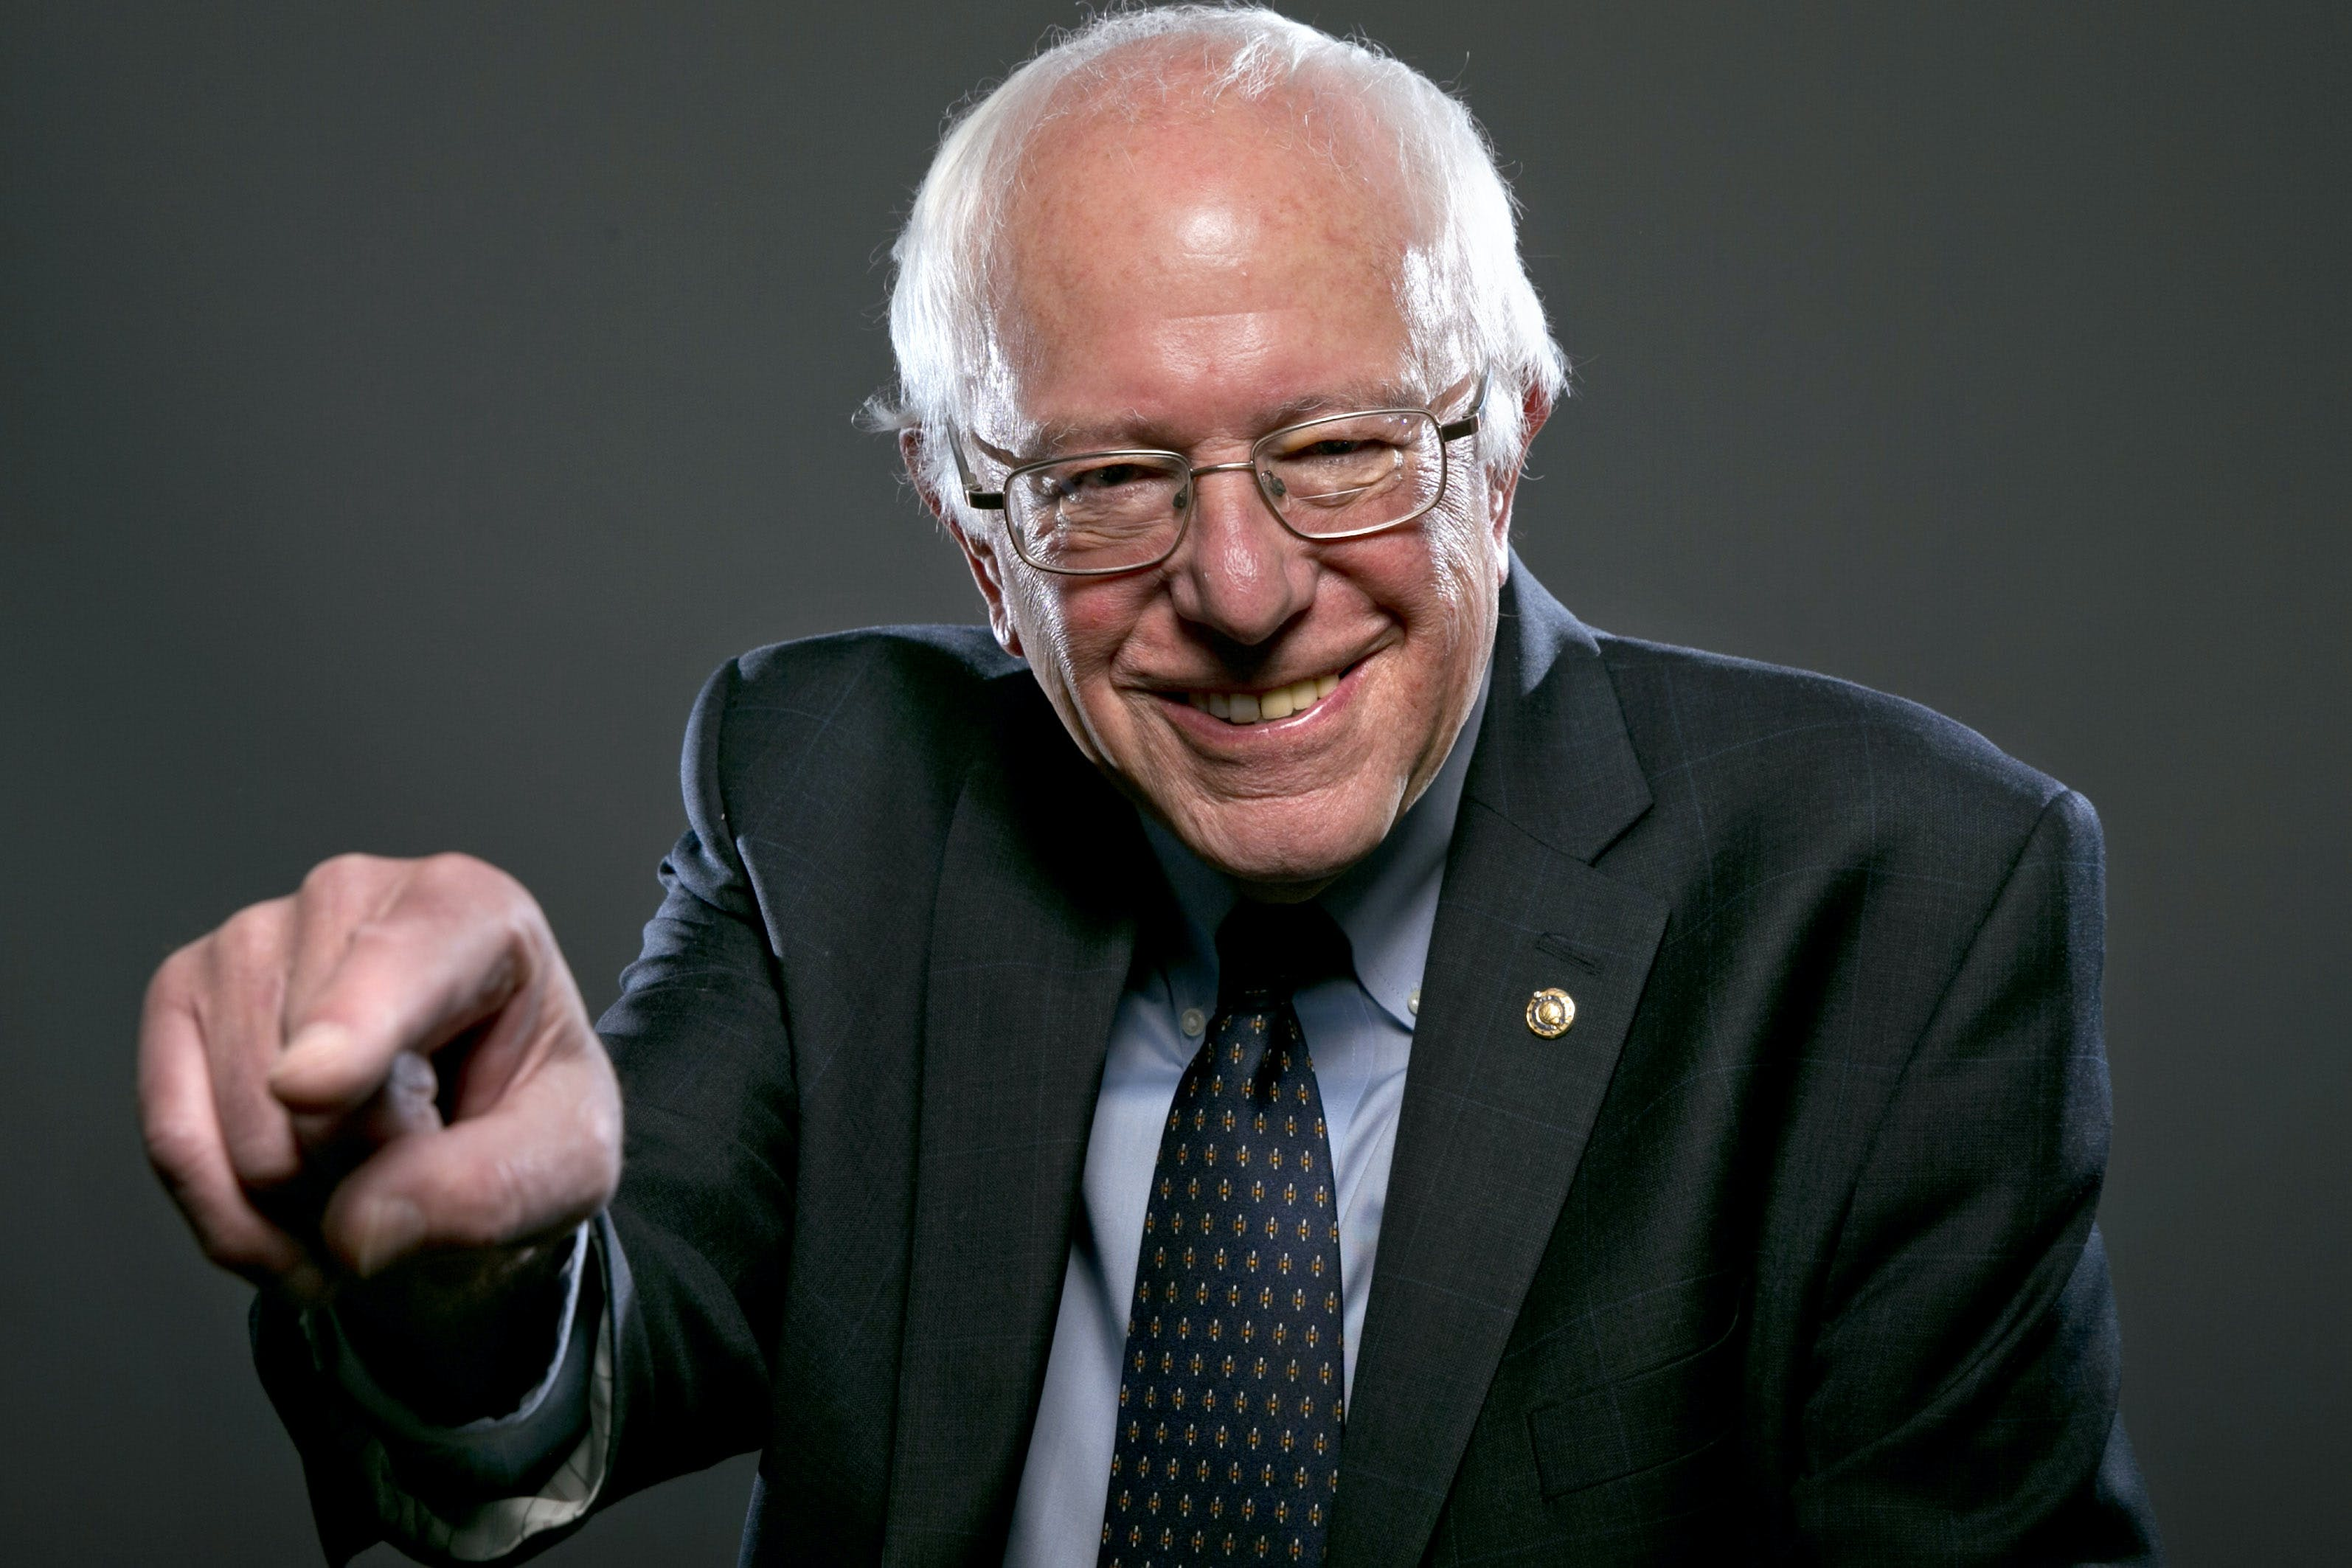 dem 2016 sanders Which Subscription Cannabis Service is Right for You? Potbox vs. Marvina